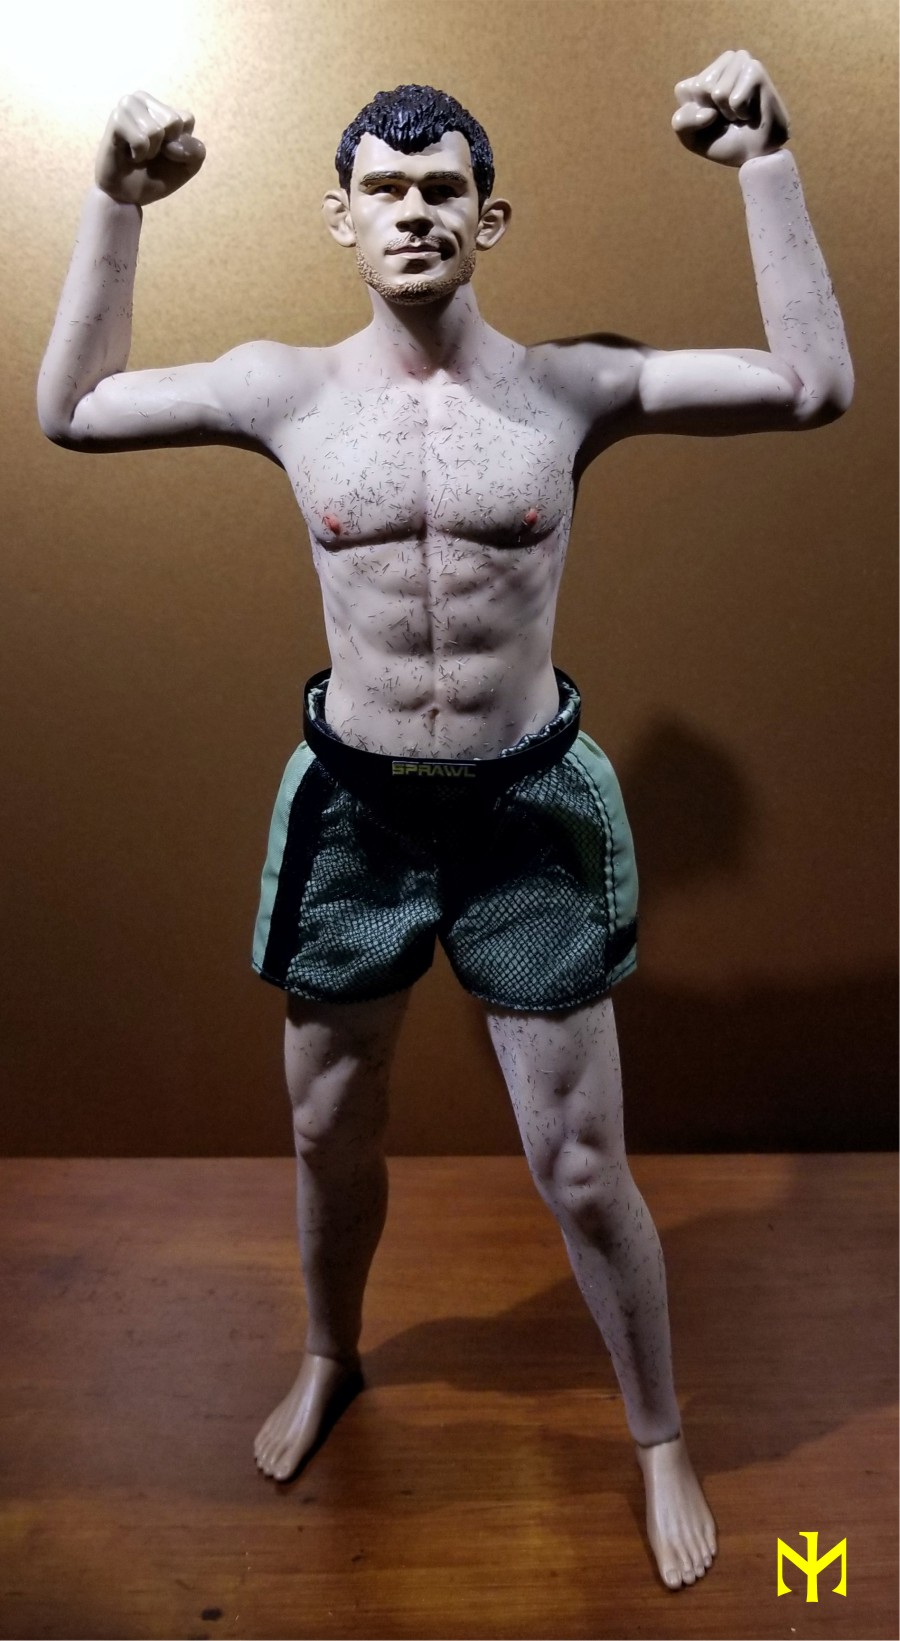 ufc - Kitbash UFC Champion Forrest Griffin Forgri17